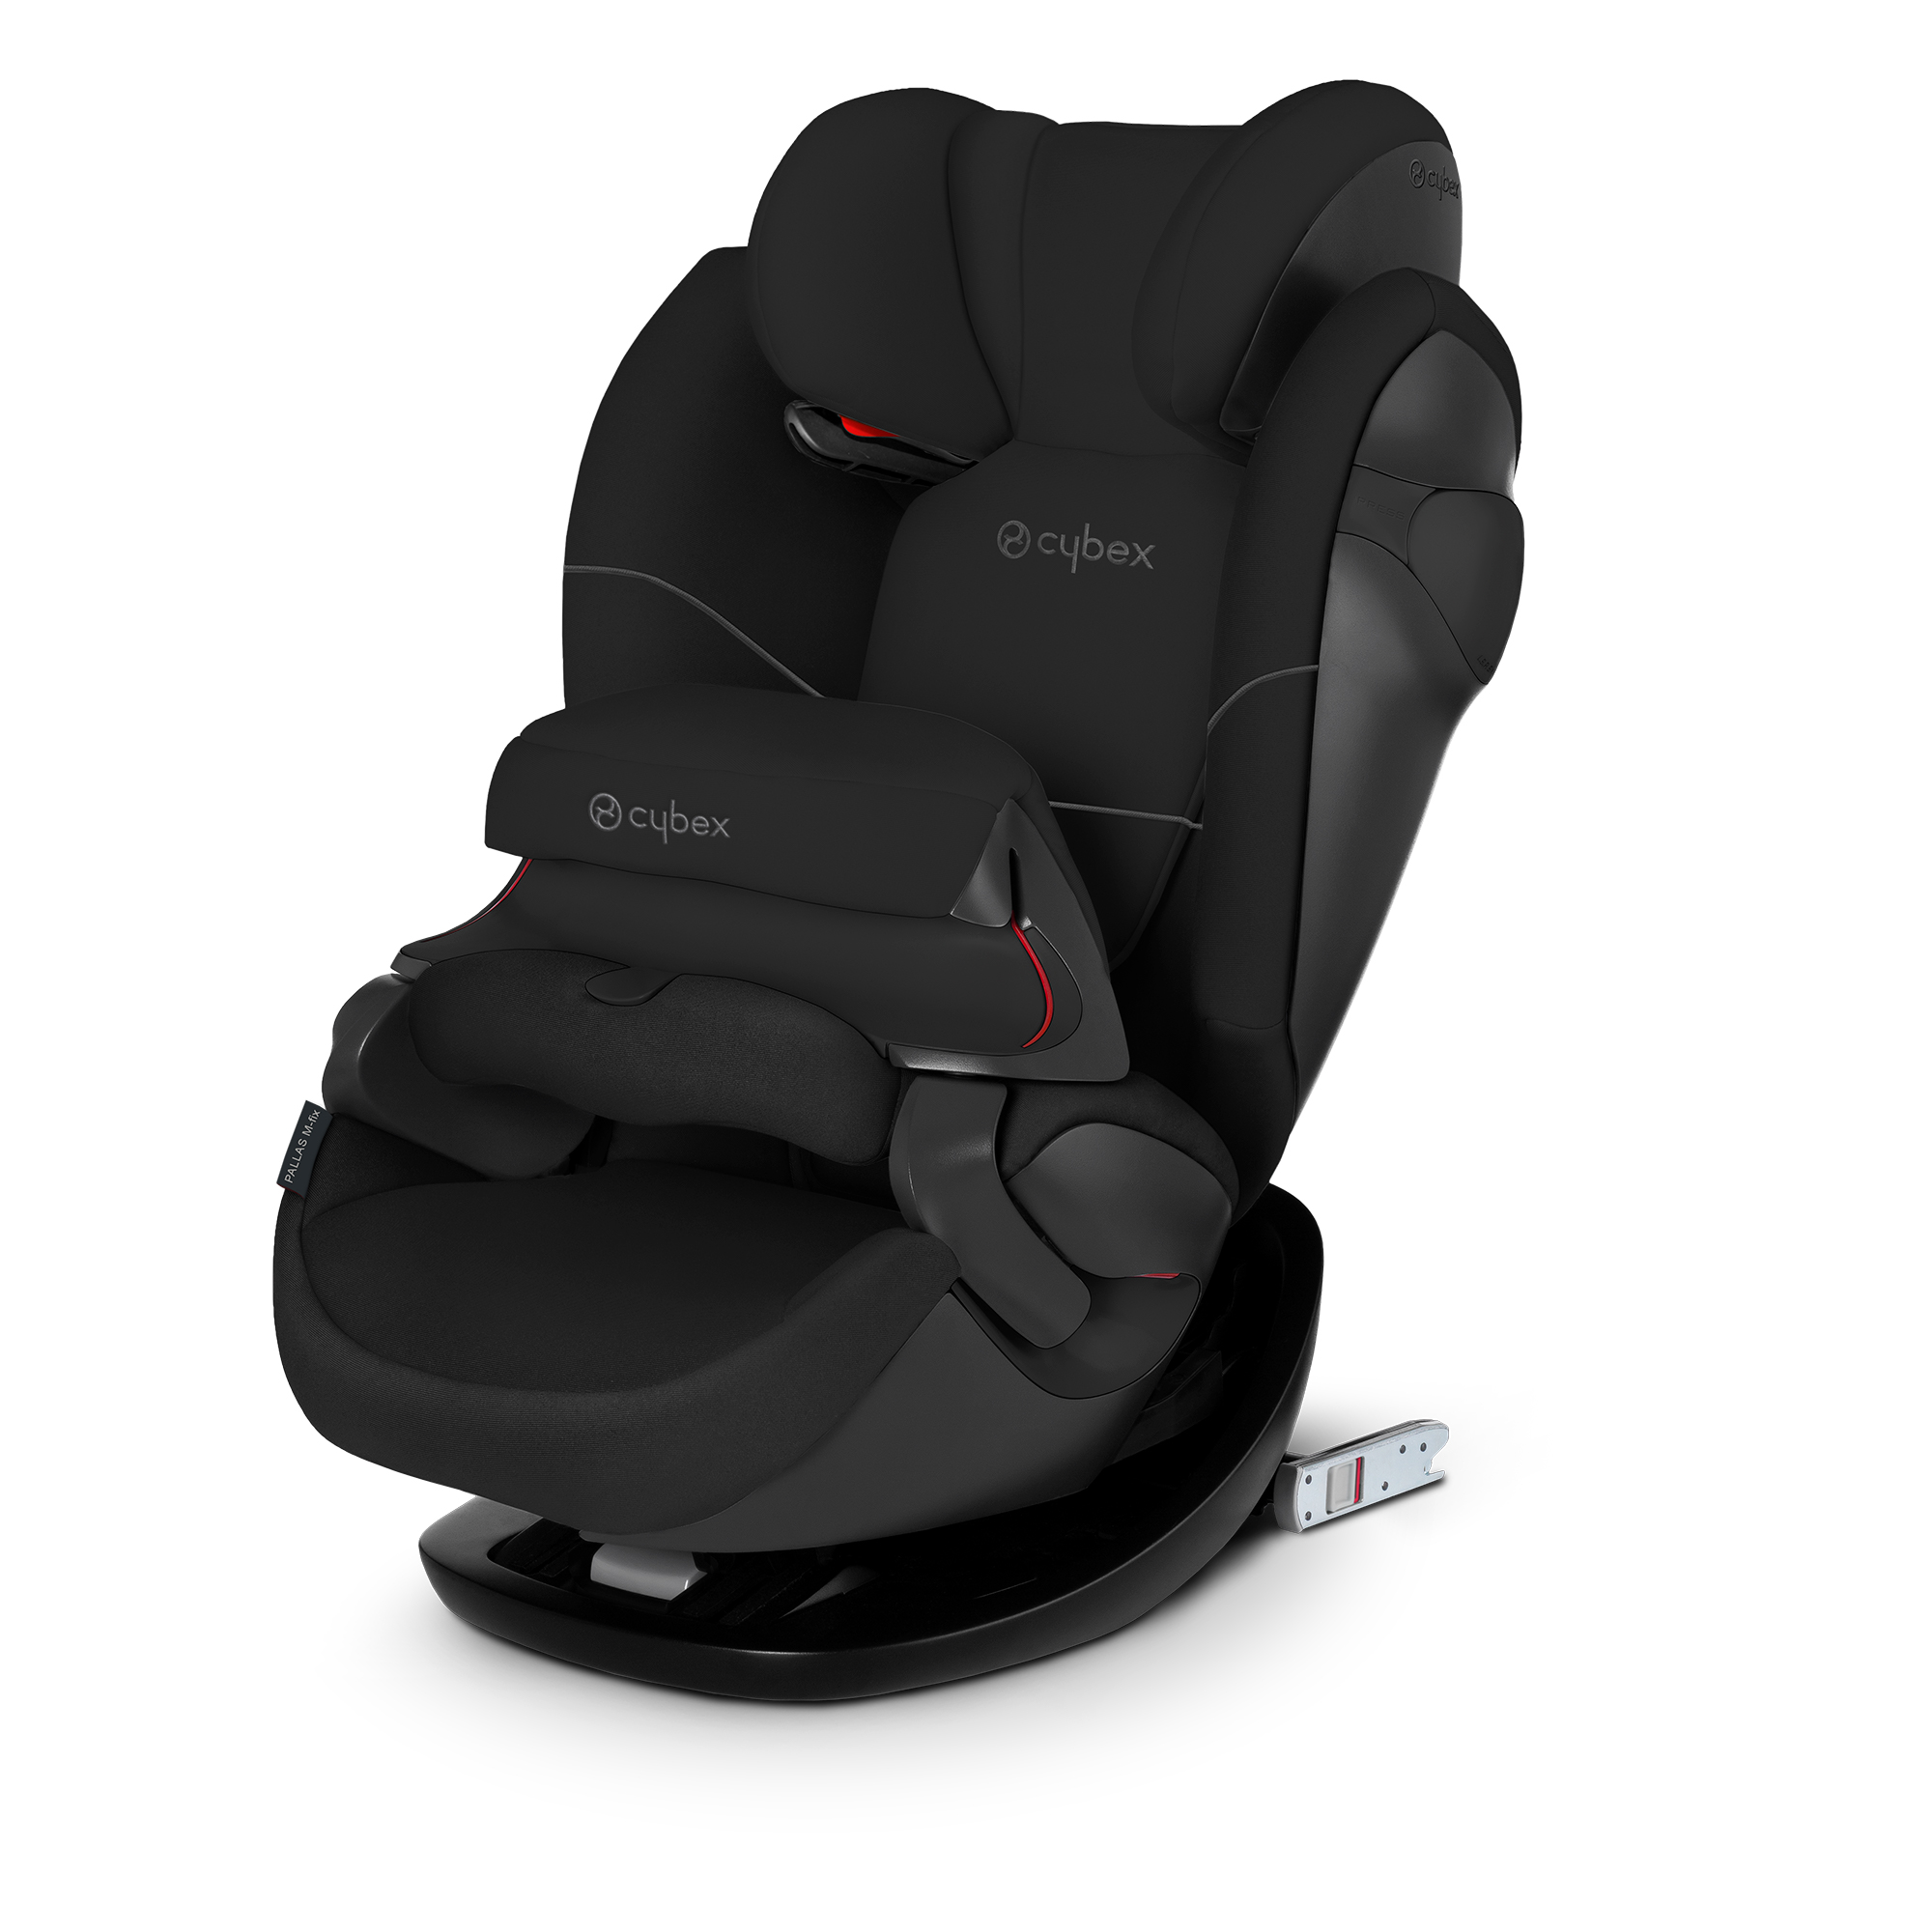 Child Car Safety Seats Cybex 519001091 for girls and boys Baby seat Kids Children chair autocradle booster